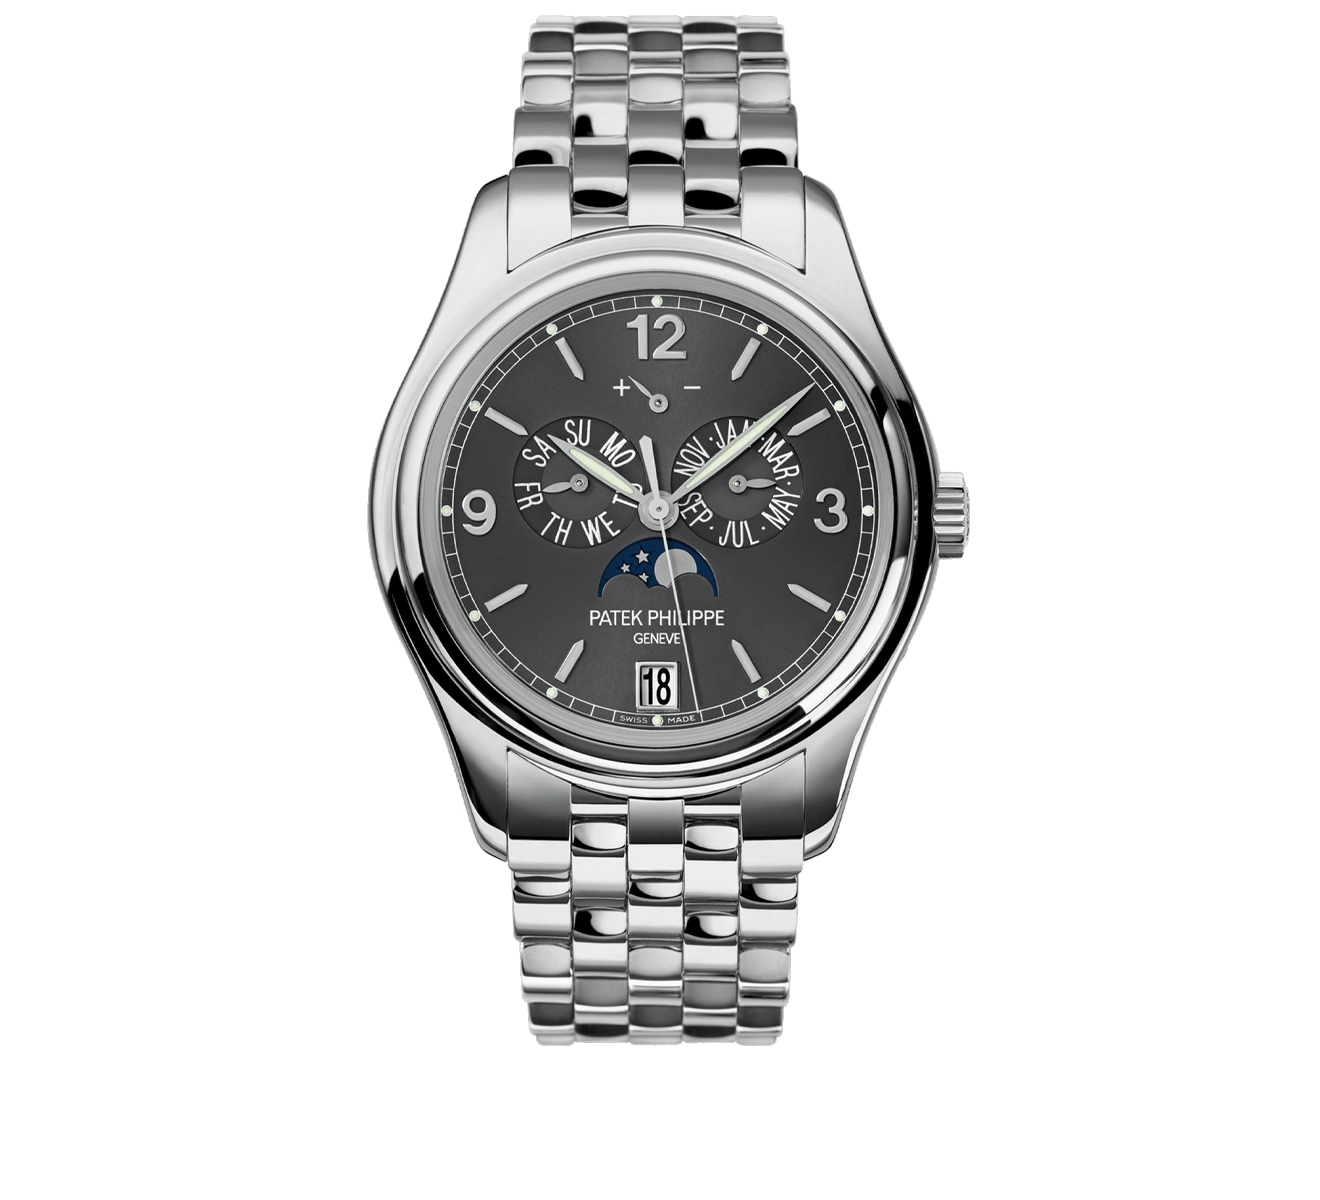 Часы White Gold Annual Calendar PATEK PHILIPPE Complications 5146/1 G-010 - фото 1 – Mercury